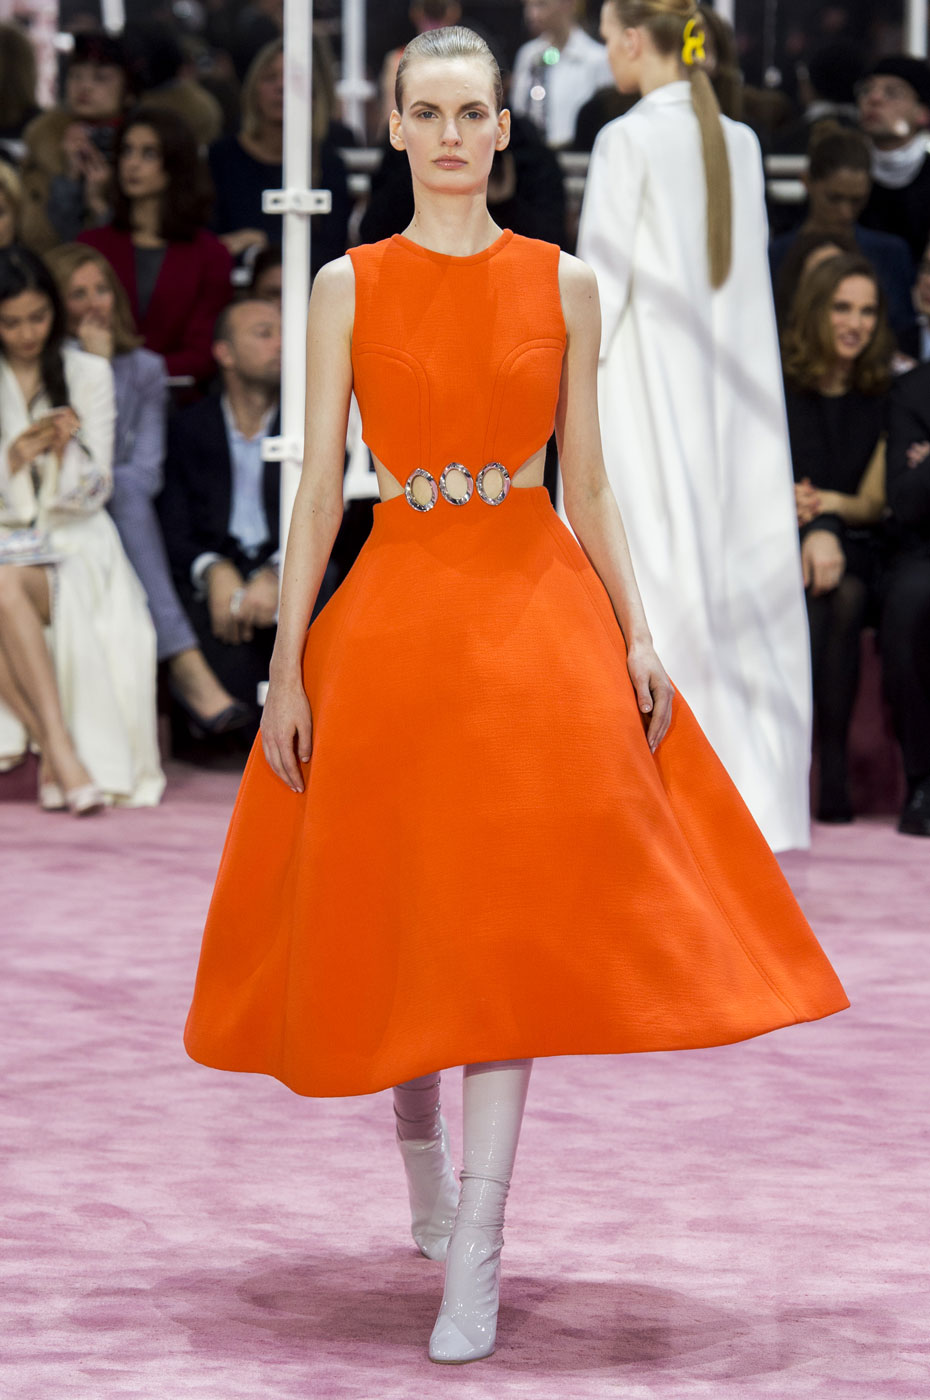 Christian-Dior-fashion-runway-show-haute-couture-paris-spring-summer-2015-the-impression-090